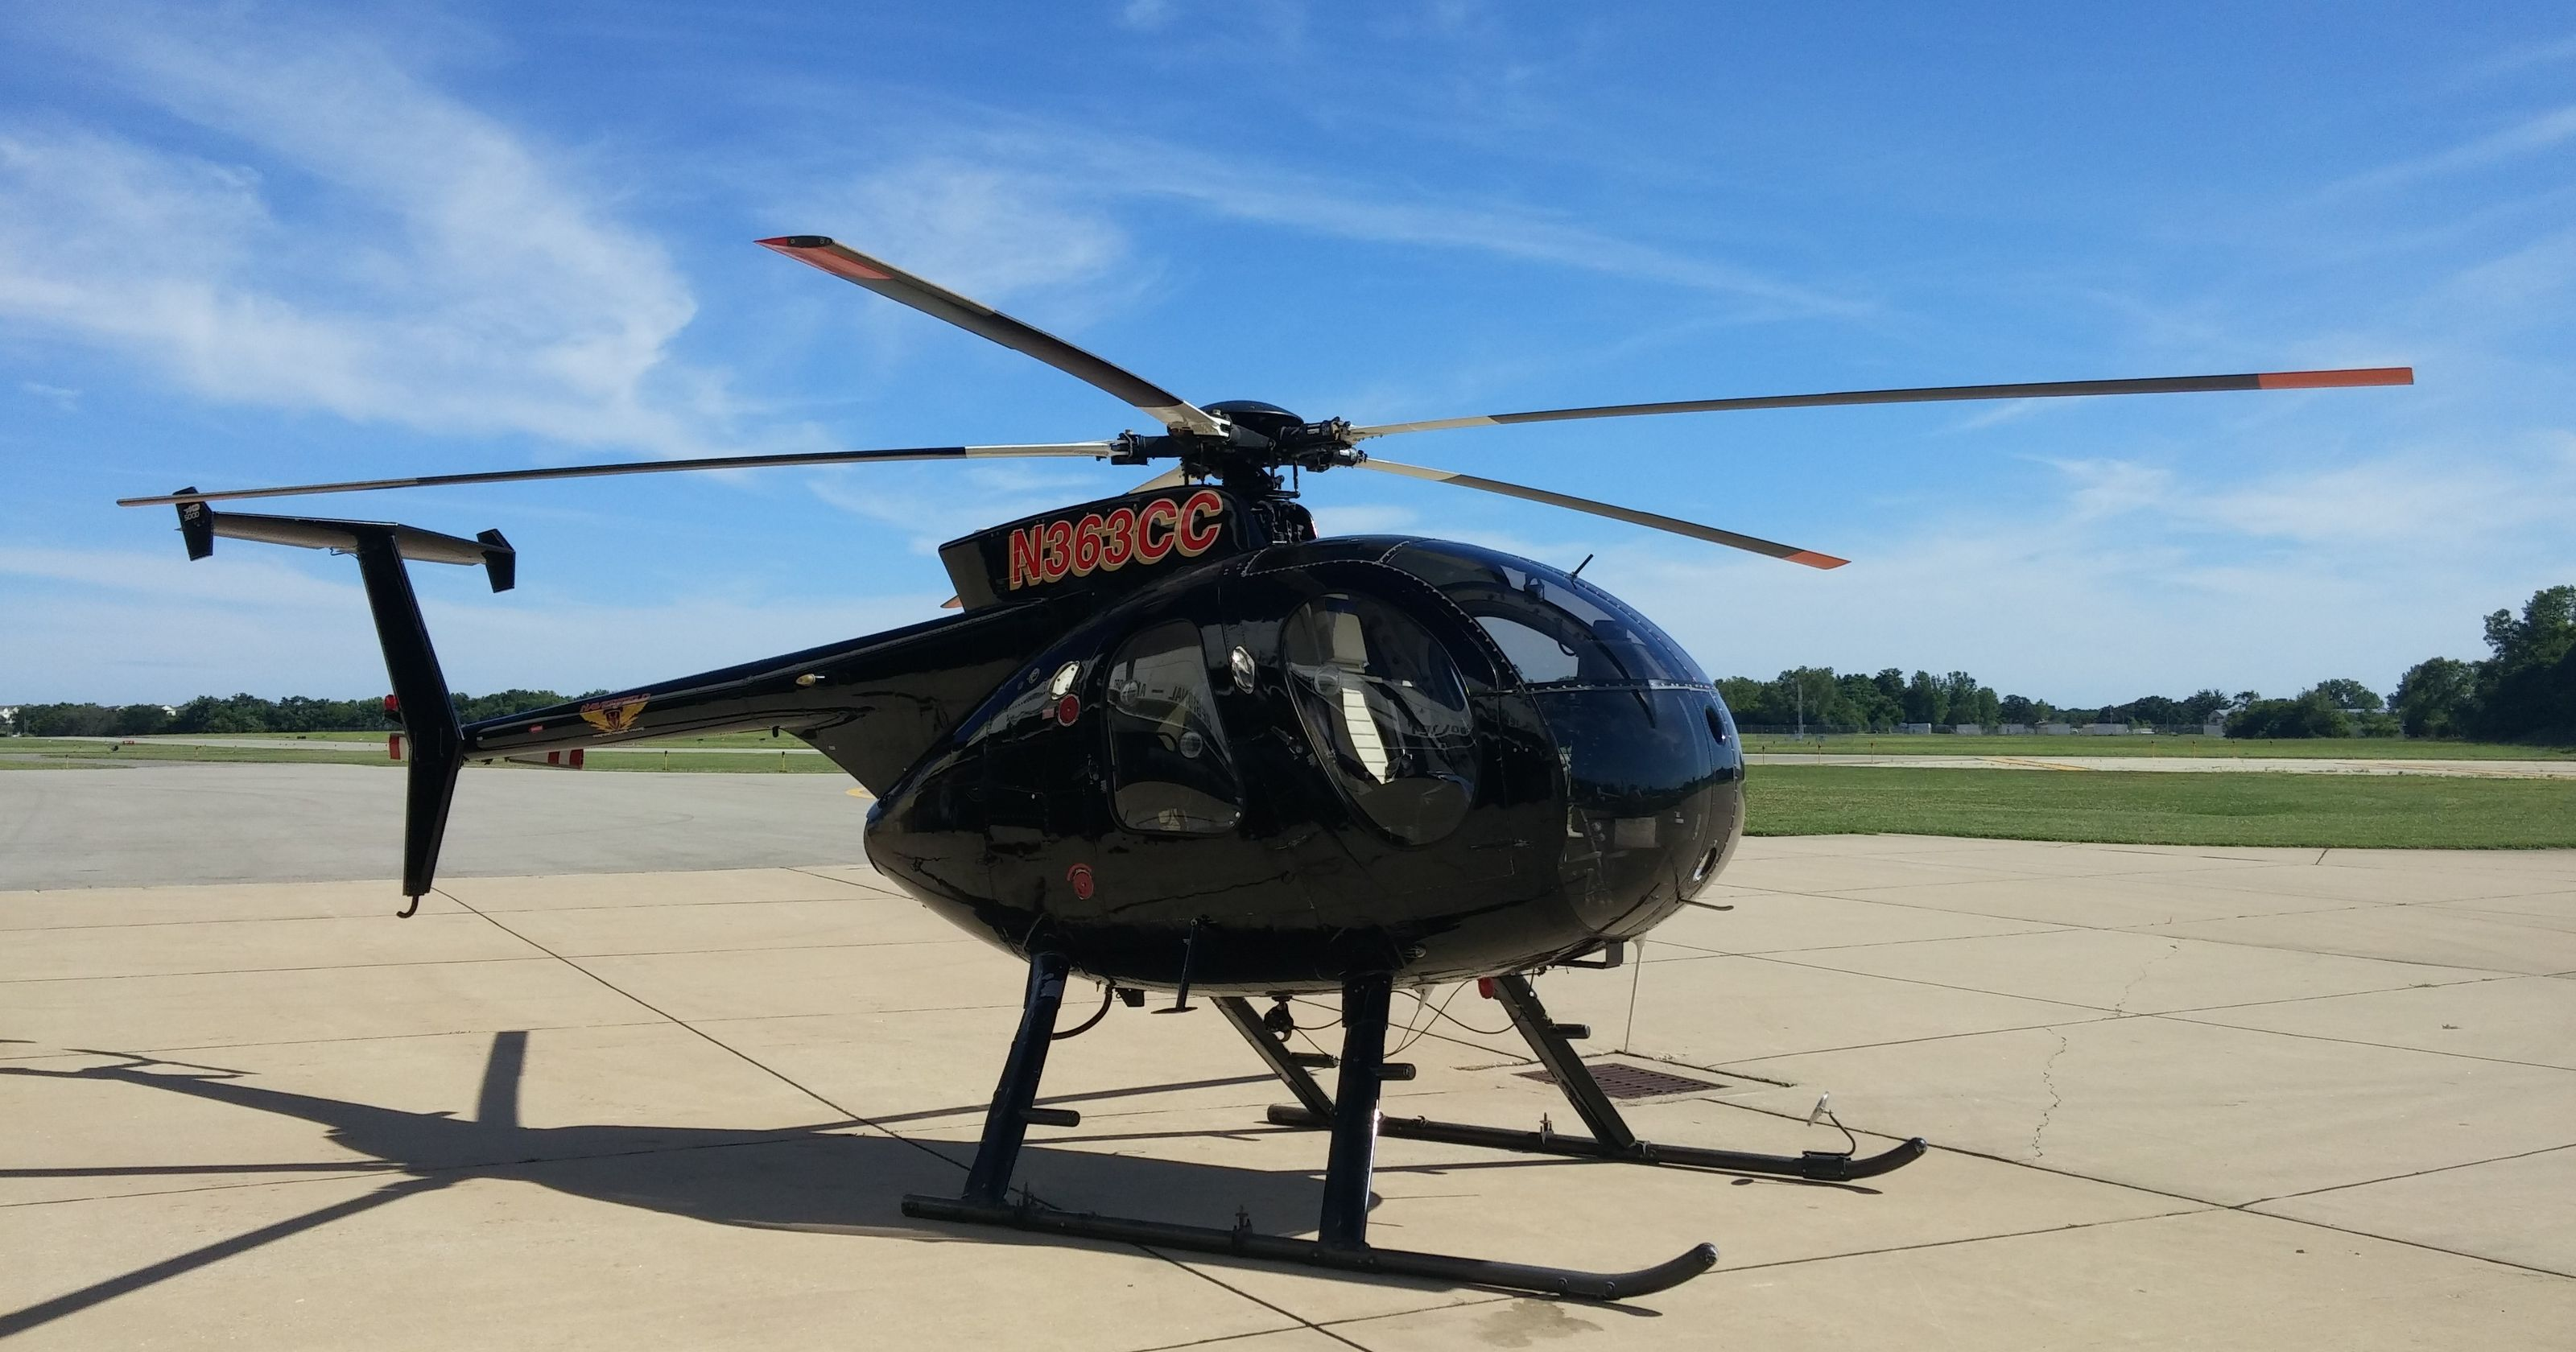 Why will a black helicopter be hovering over parts of central PA?